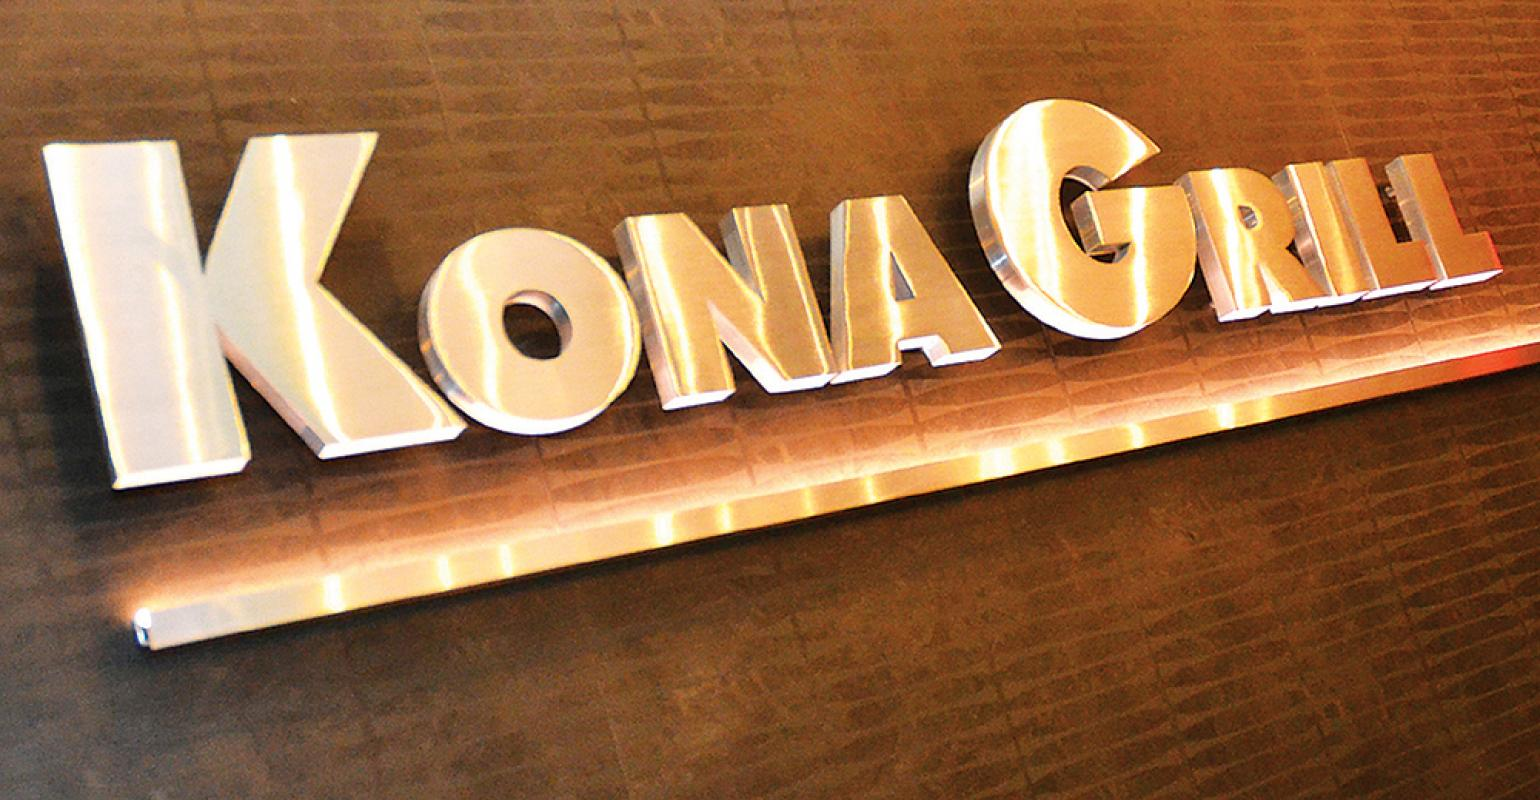 Two former CEOs team up in Kona Grill bid